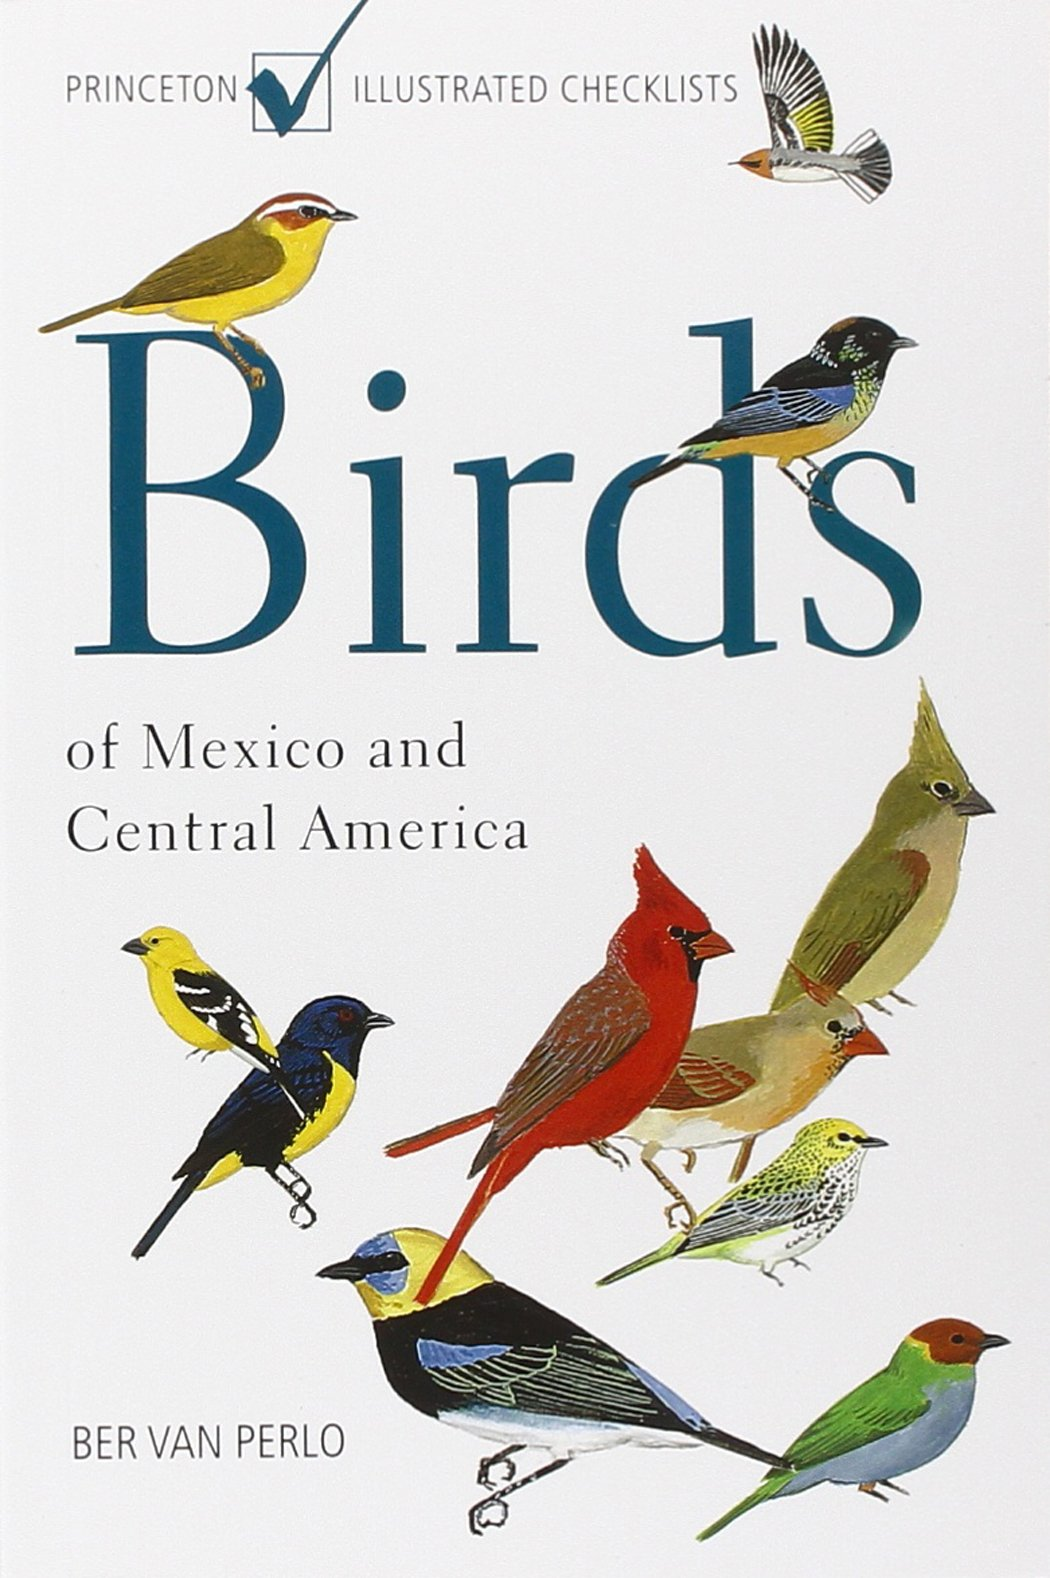 Birds of Mexico and Central America: Princeton Illustrated Checklists: Amazon.es: van Perlo, Ber: Libros en idiomas extranjeros